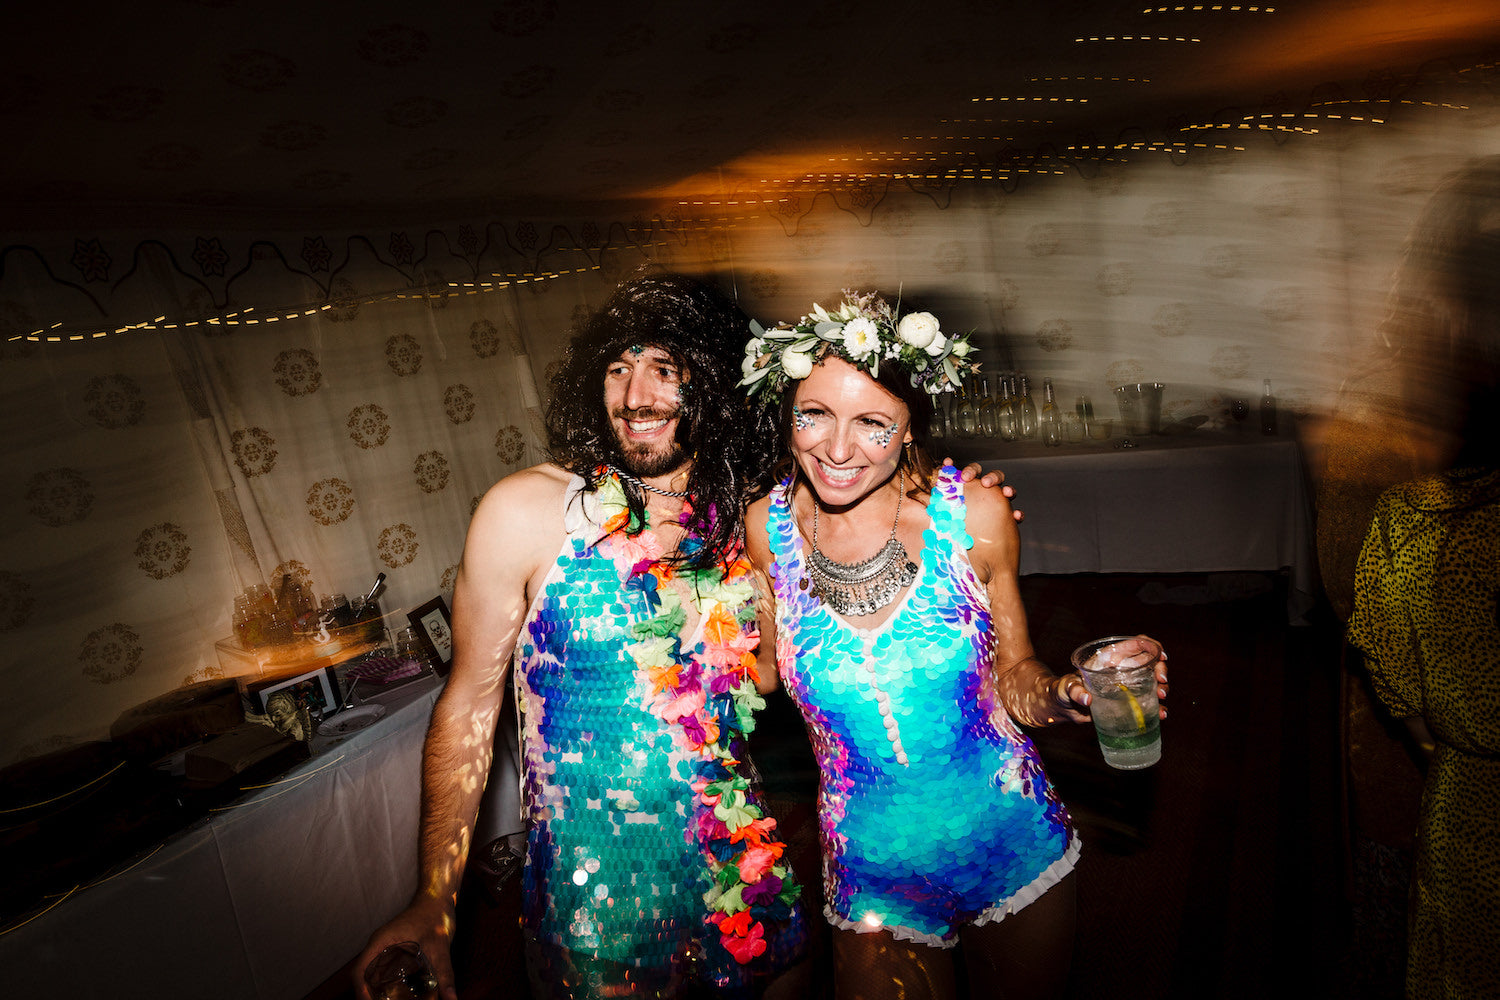 A bride wearing a white sequin playsuit poses with a male wedding guest wearing a sequin dress and a long black wig.